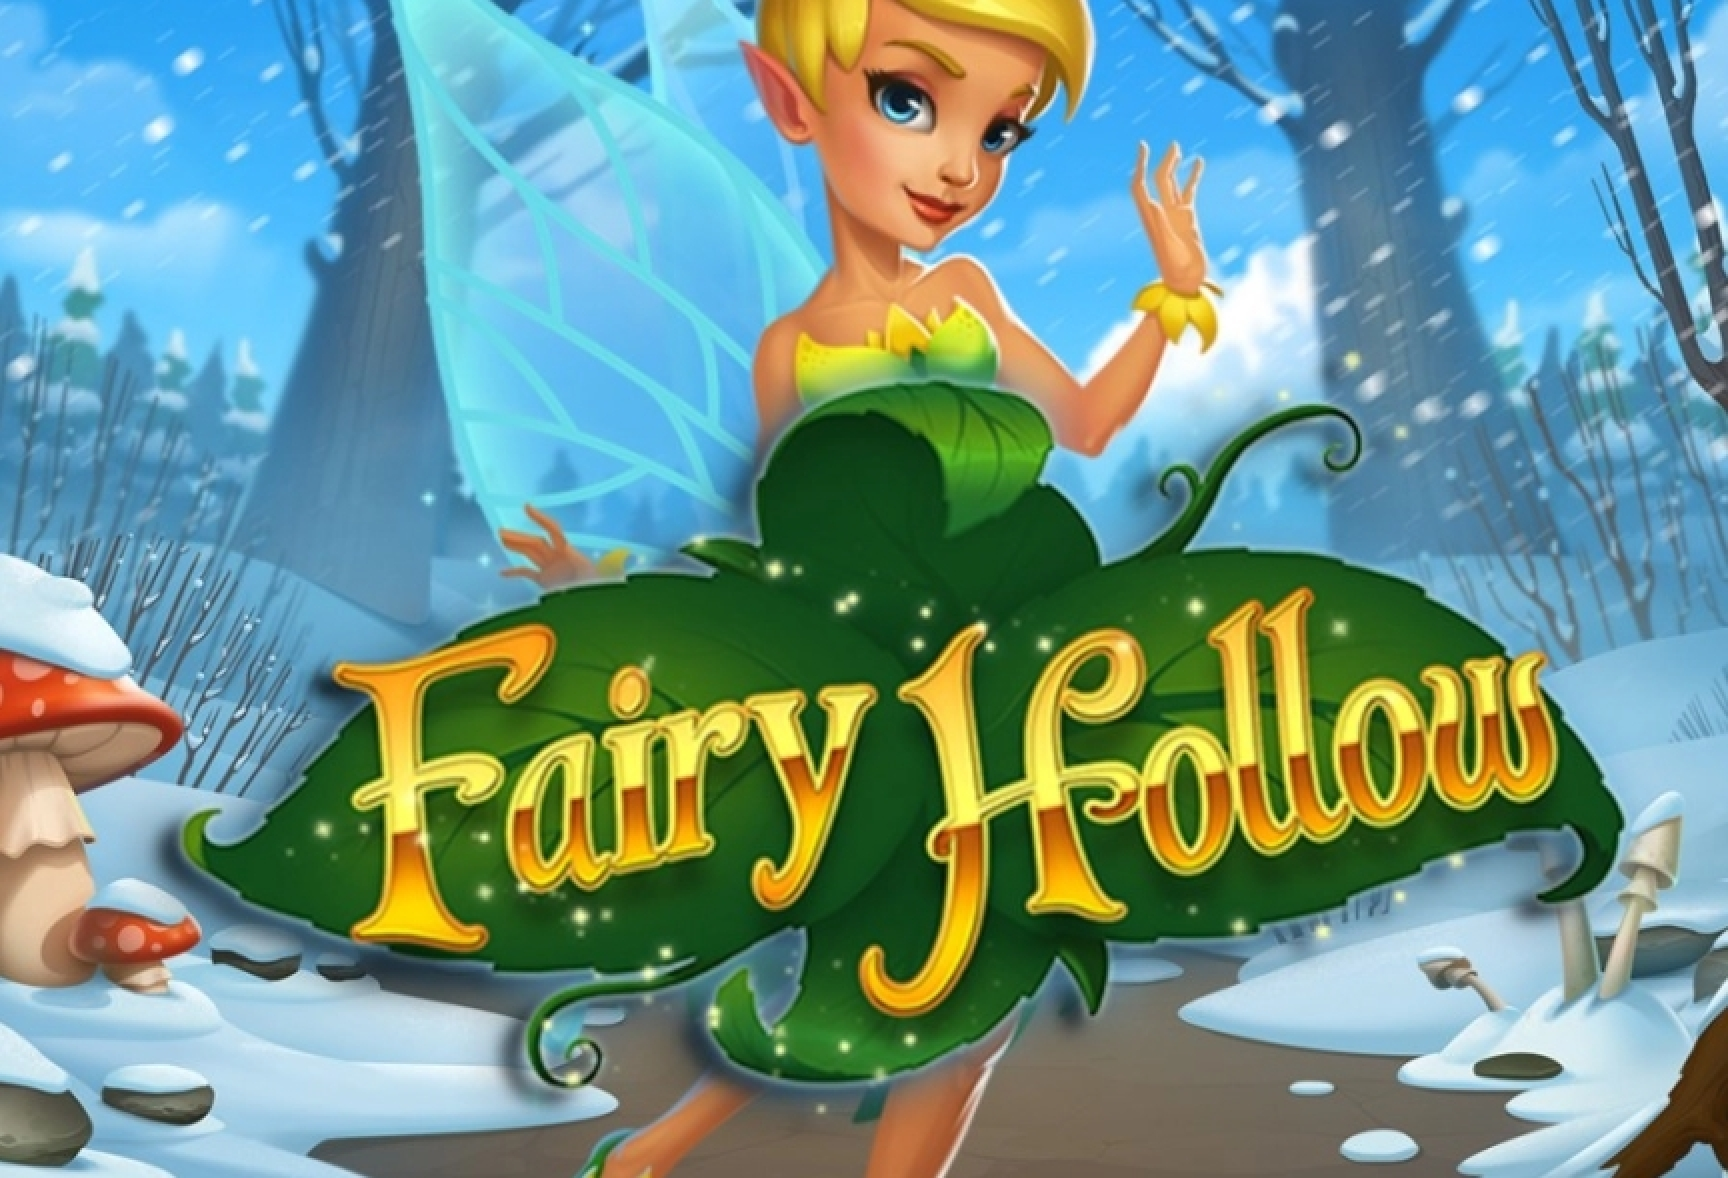 Win Money in Fairy Hollow Free Slot Game by Swintt